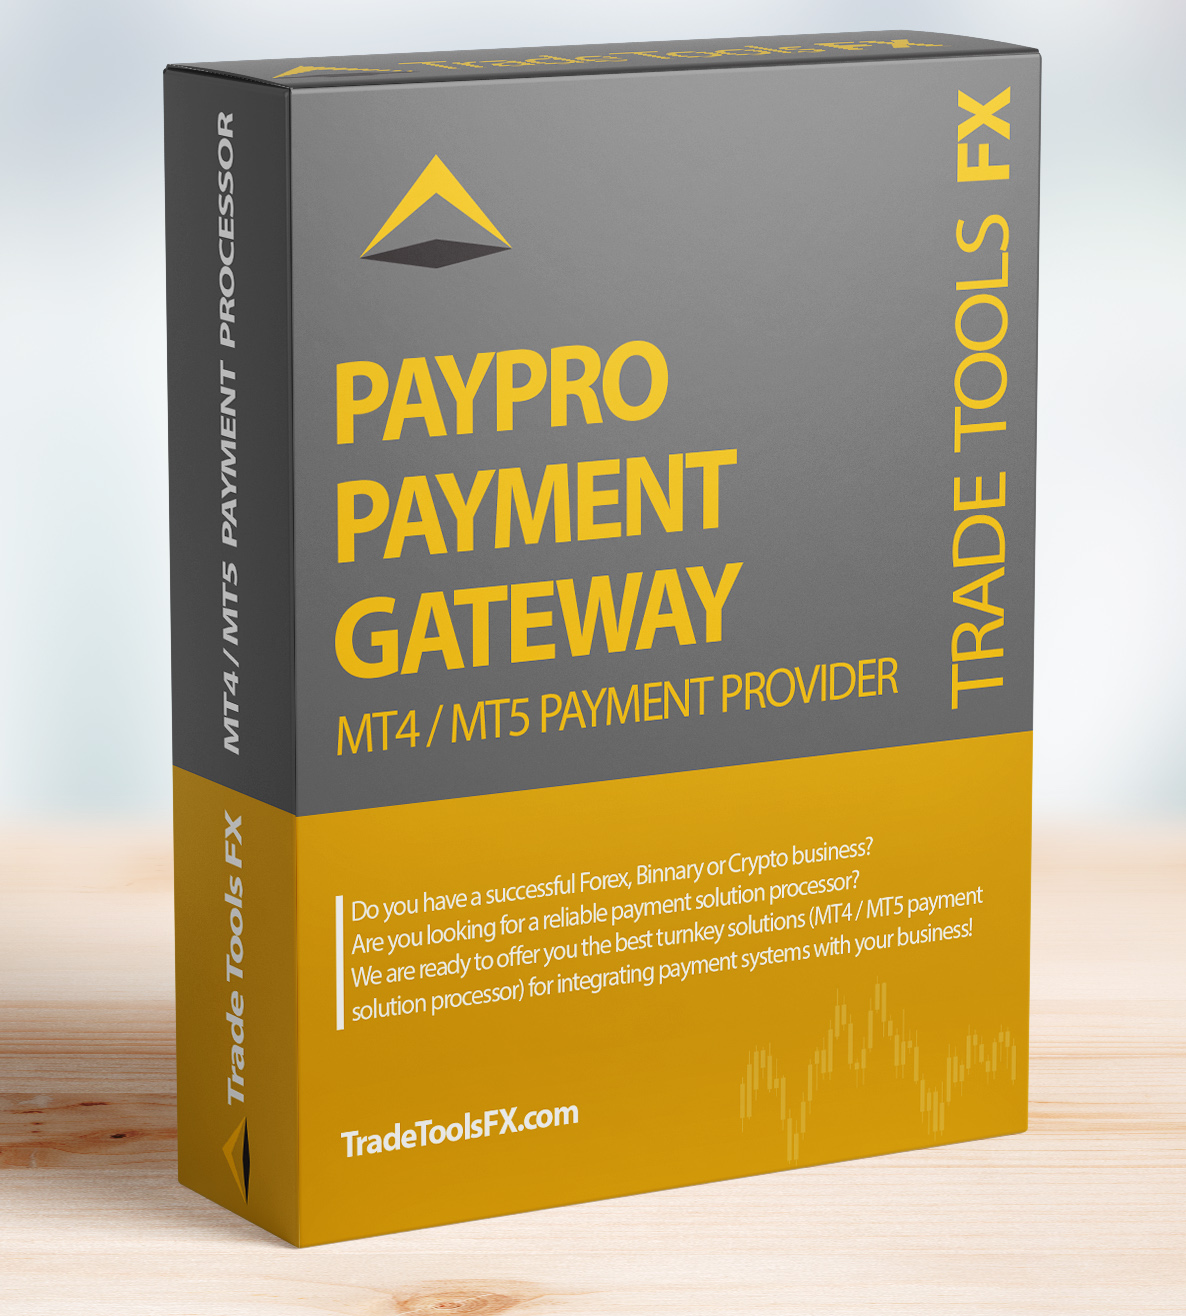 Payment gateway for brokers mt4 / mt5 (Payment Service Provider)